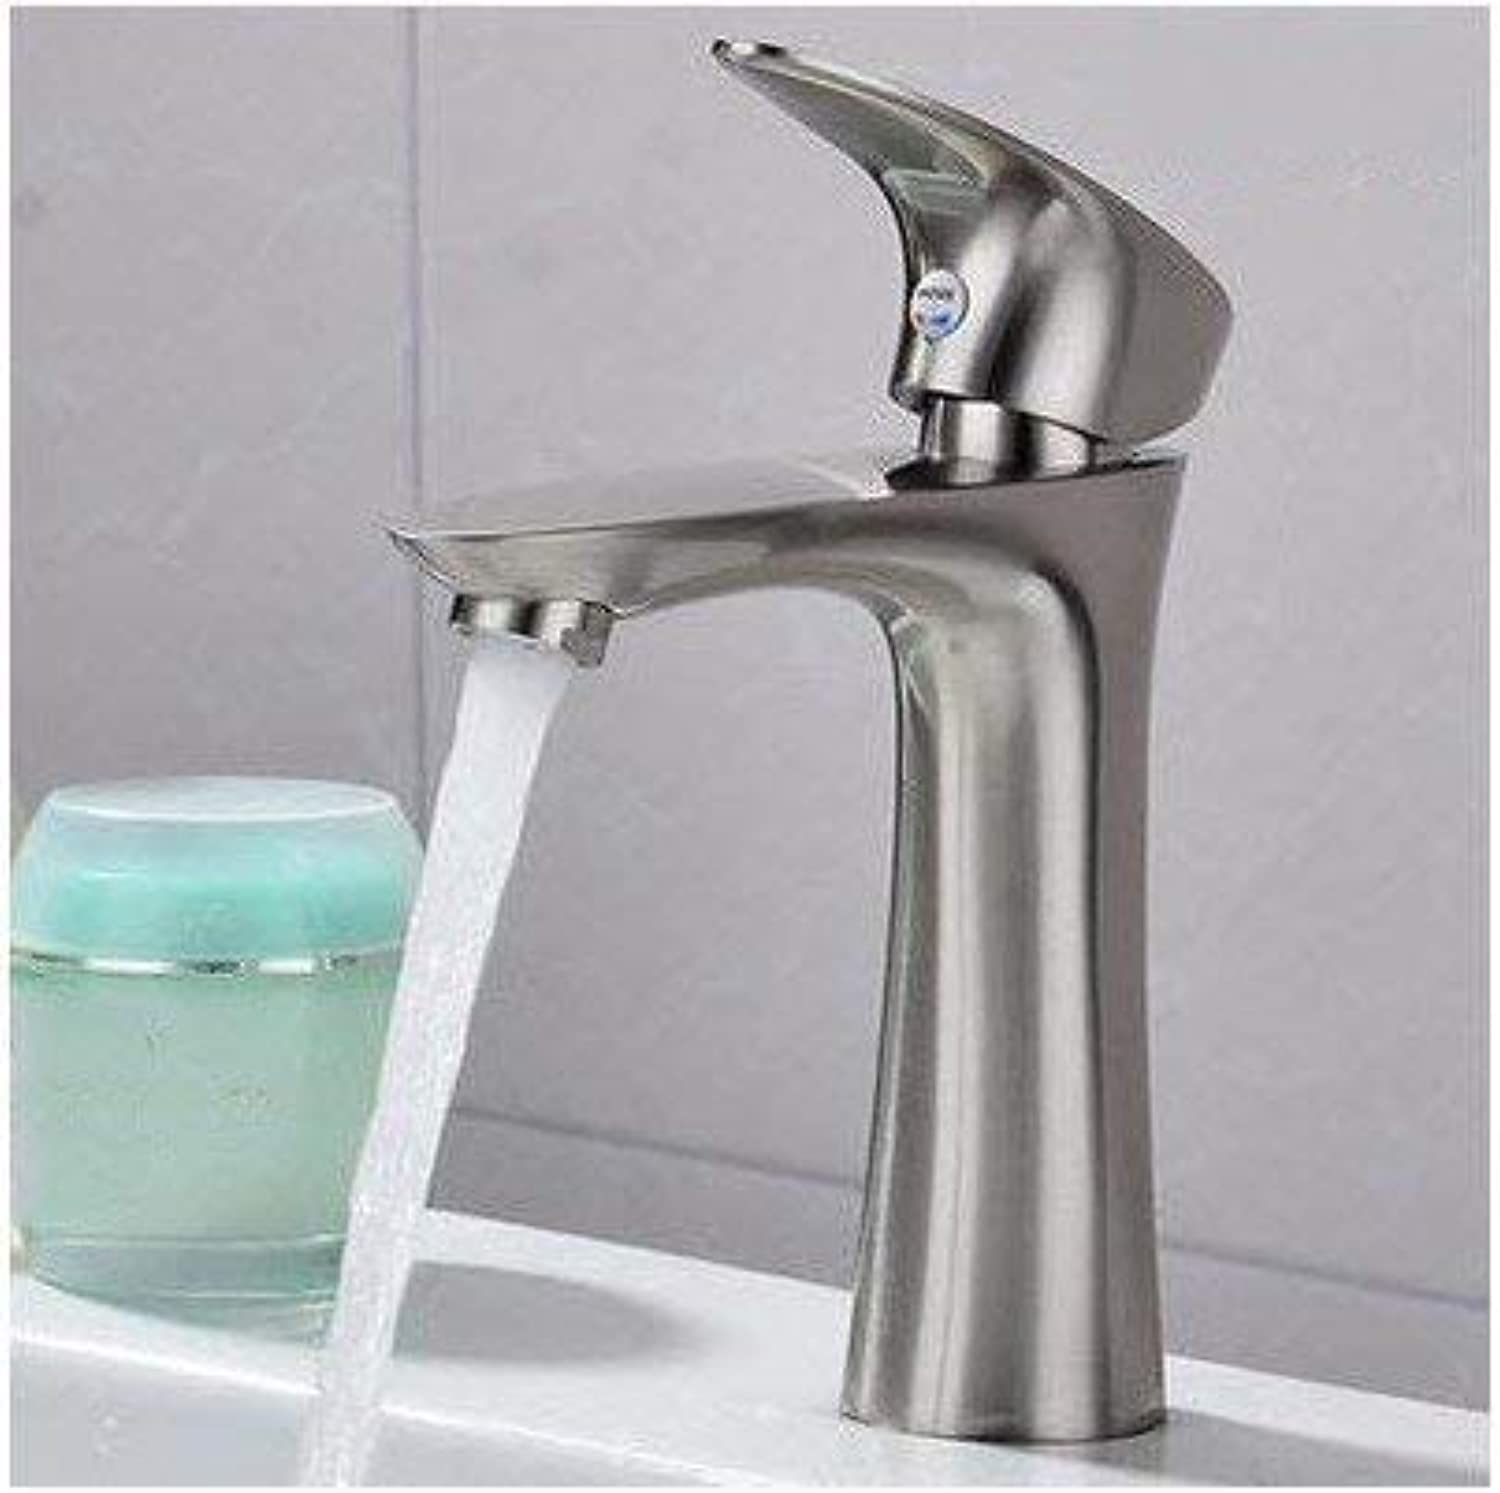 Oudan Basin Mixer Tap Bathroom Sink Faucet Basin mixer single hole cold-hot,C, (color   C)